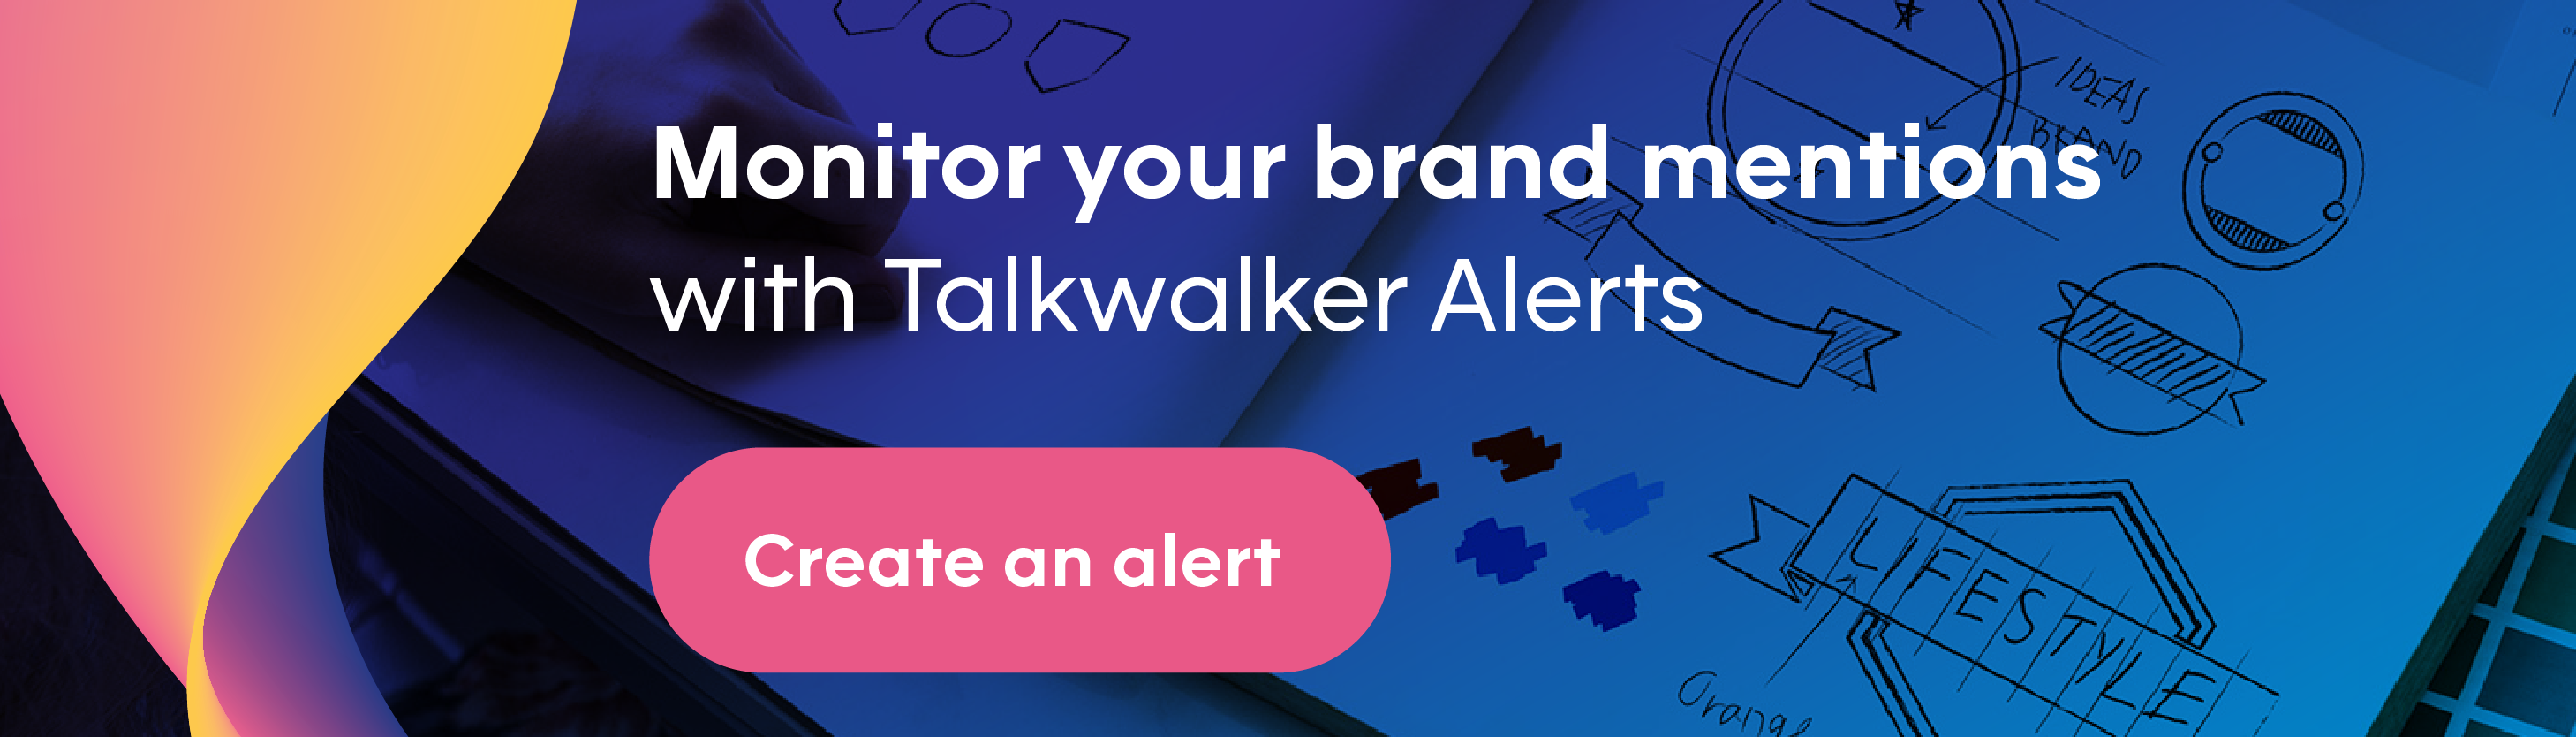 Monitor brand mentions via Talkwalker Alerts